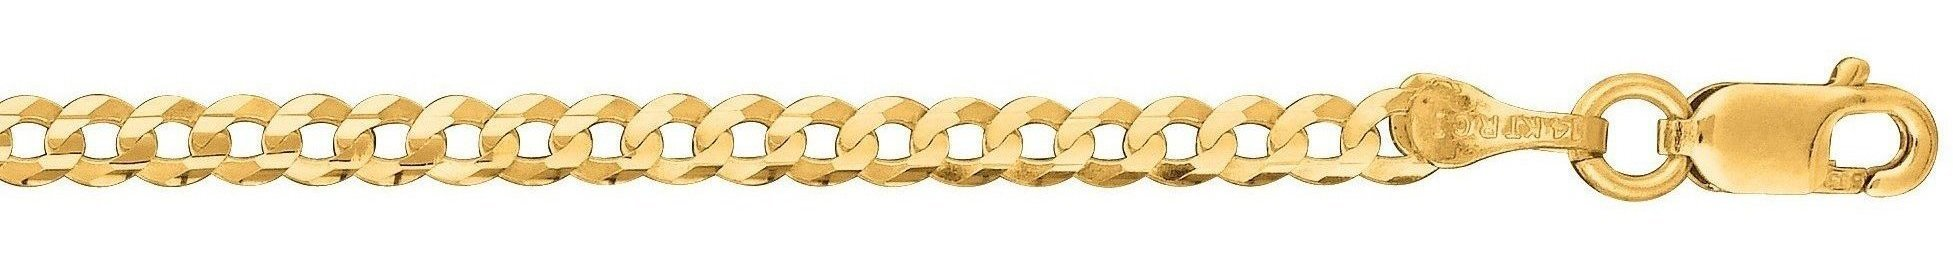 "18"" 14K Yellow Gold 2.6mm (1/10"") Polished Diamond Cut Comfort Curb Chain w/ Lobster Clasp"